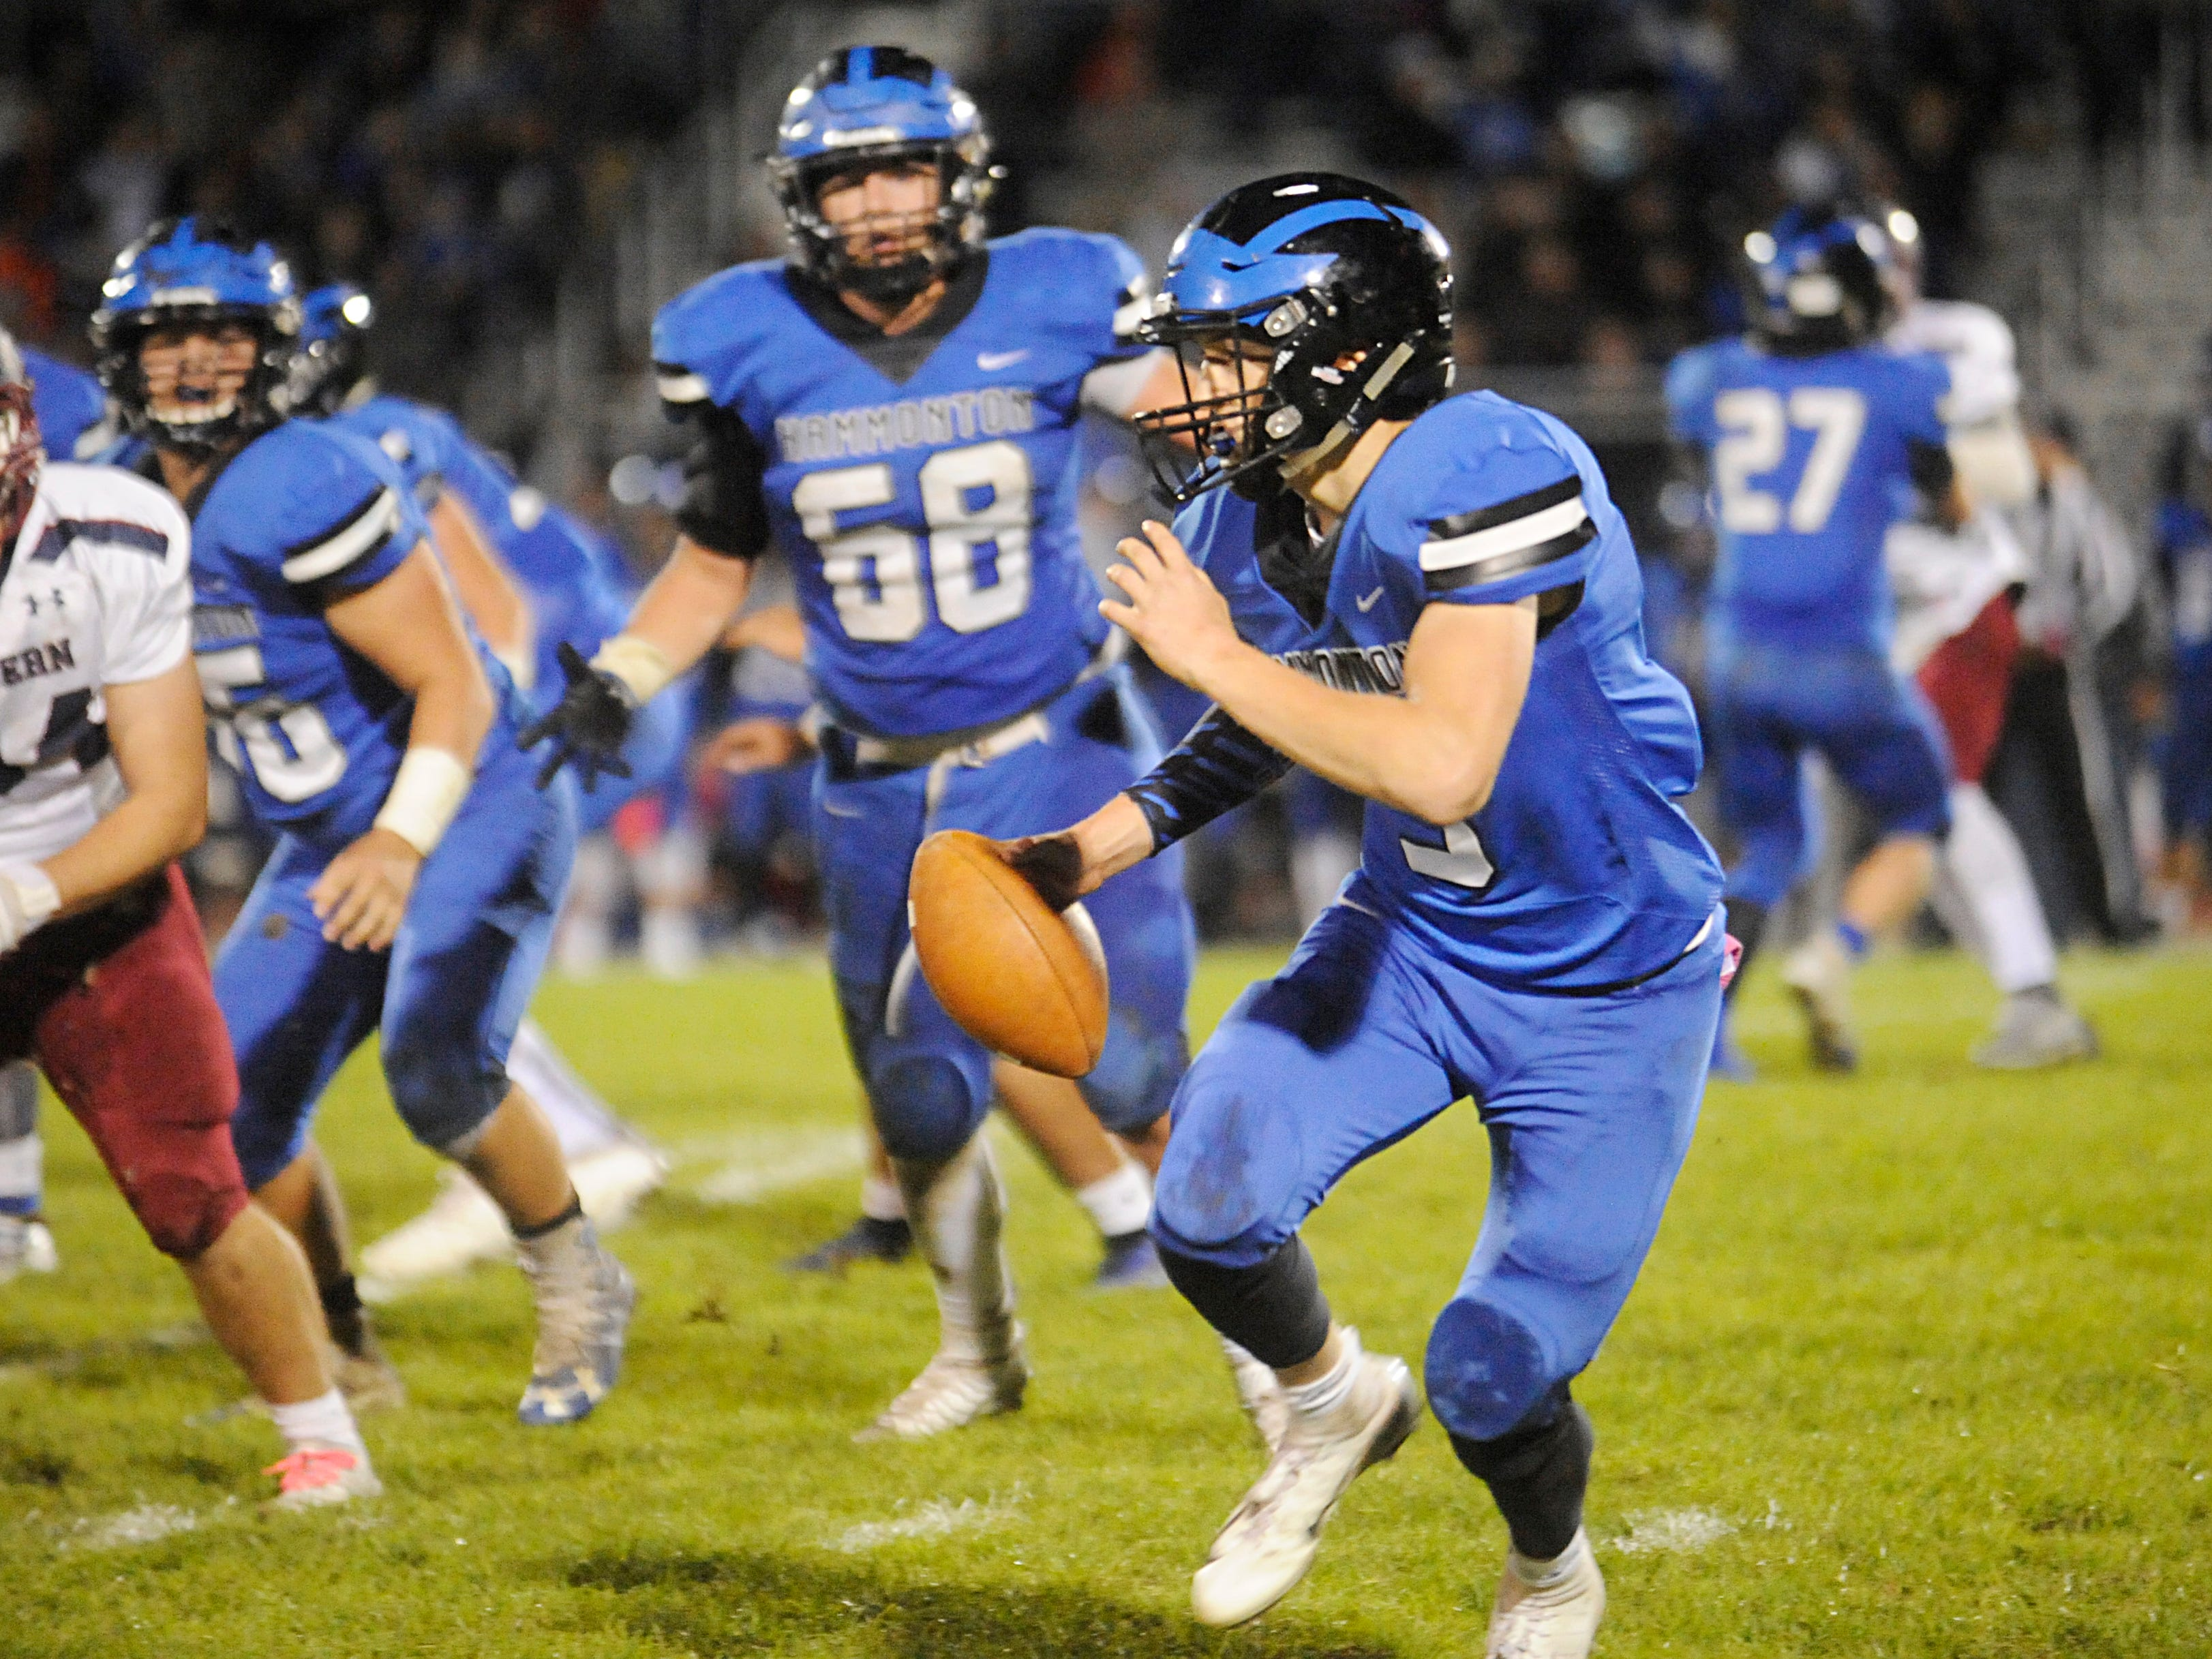 Hammonton's QB, Ryan Barts runs for a gain against visiting Eastern. The Vikings topped the Blue Devils, 13-12, on Friday, October 19, 2018.